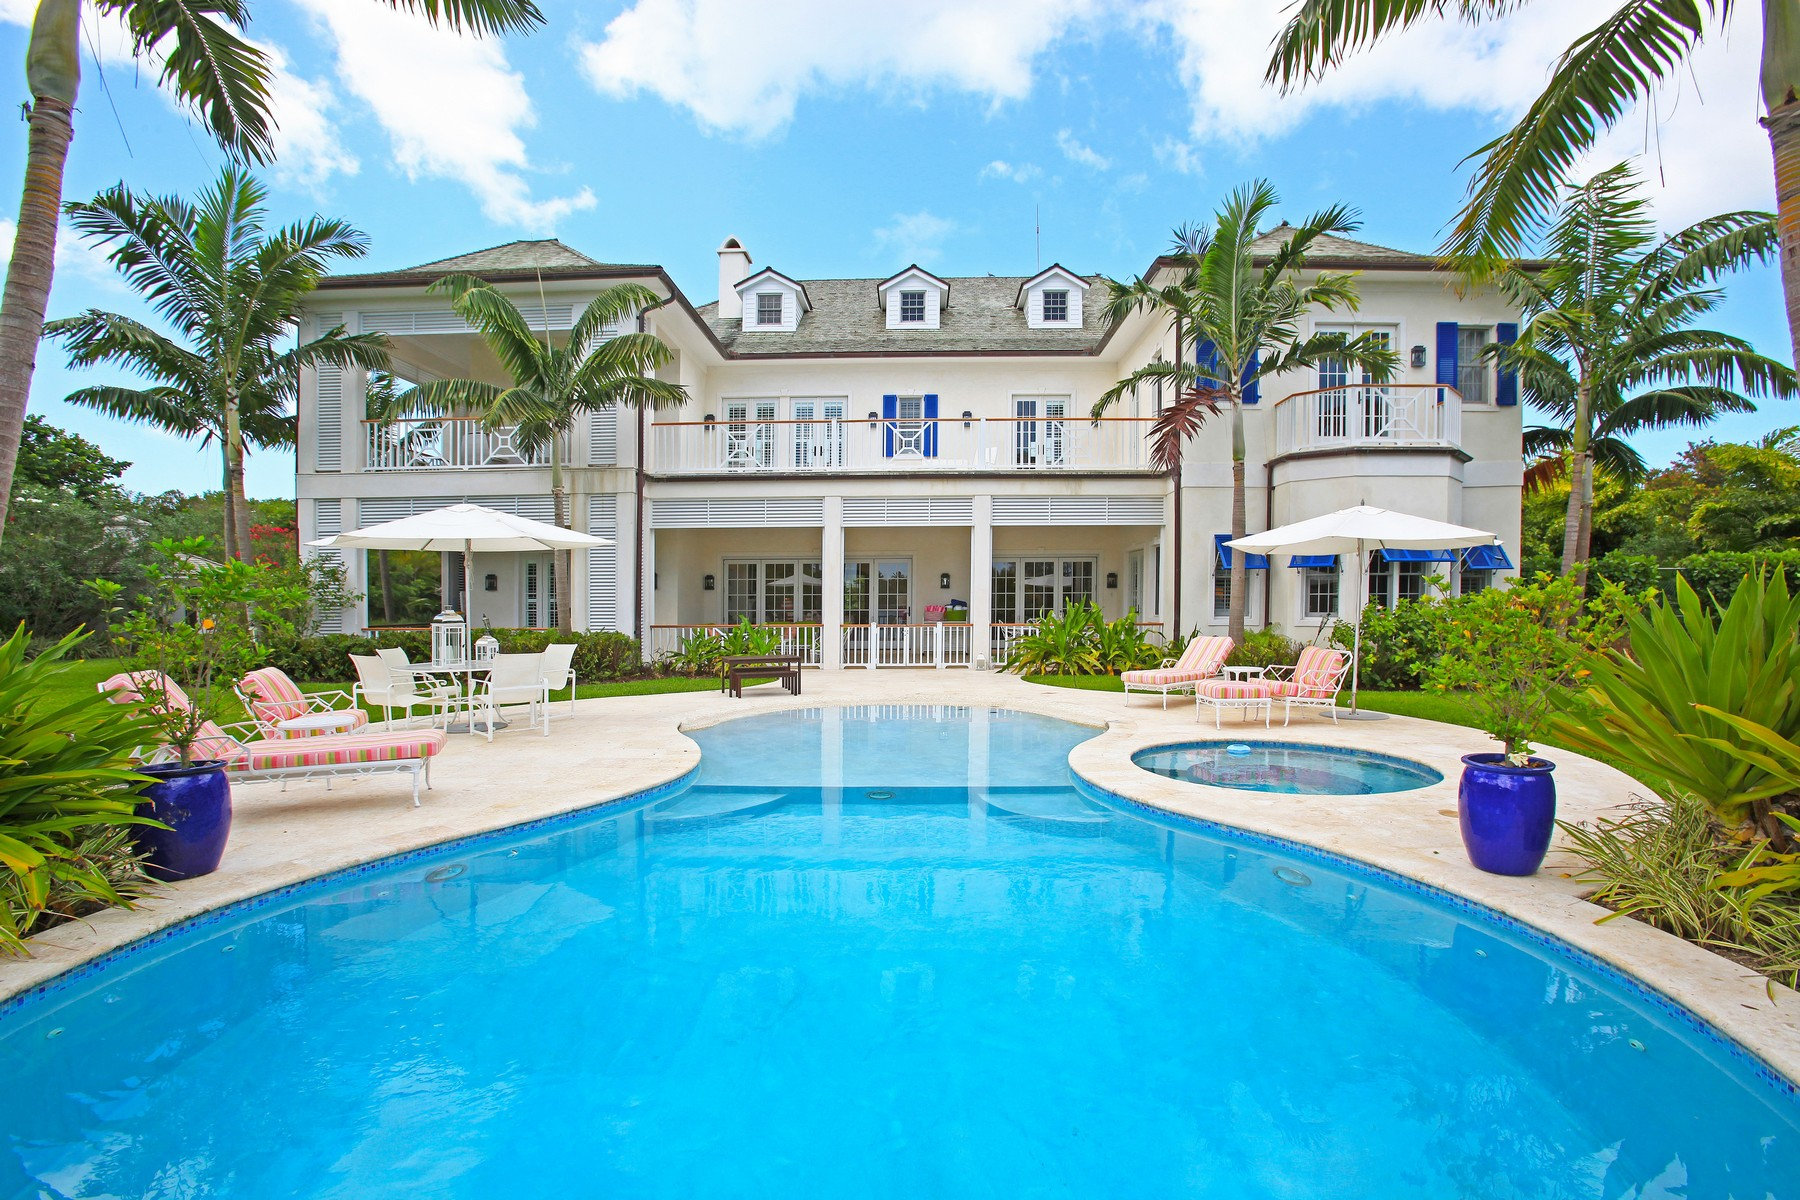 Single Family Home for Sale at The Cuckoo's Nest Lyford Cay, Nassau And Paradise Island, Bahamas